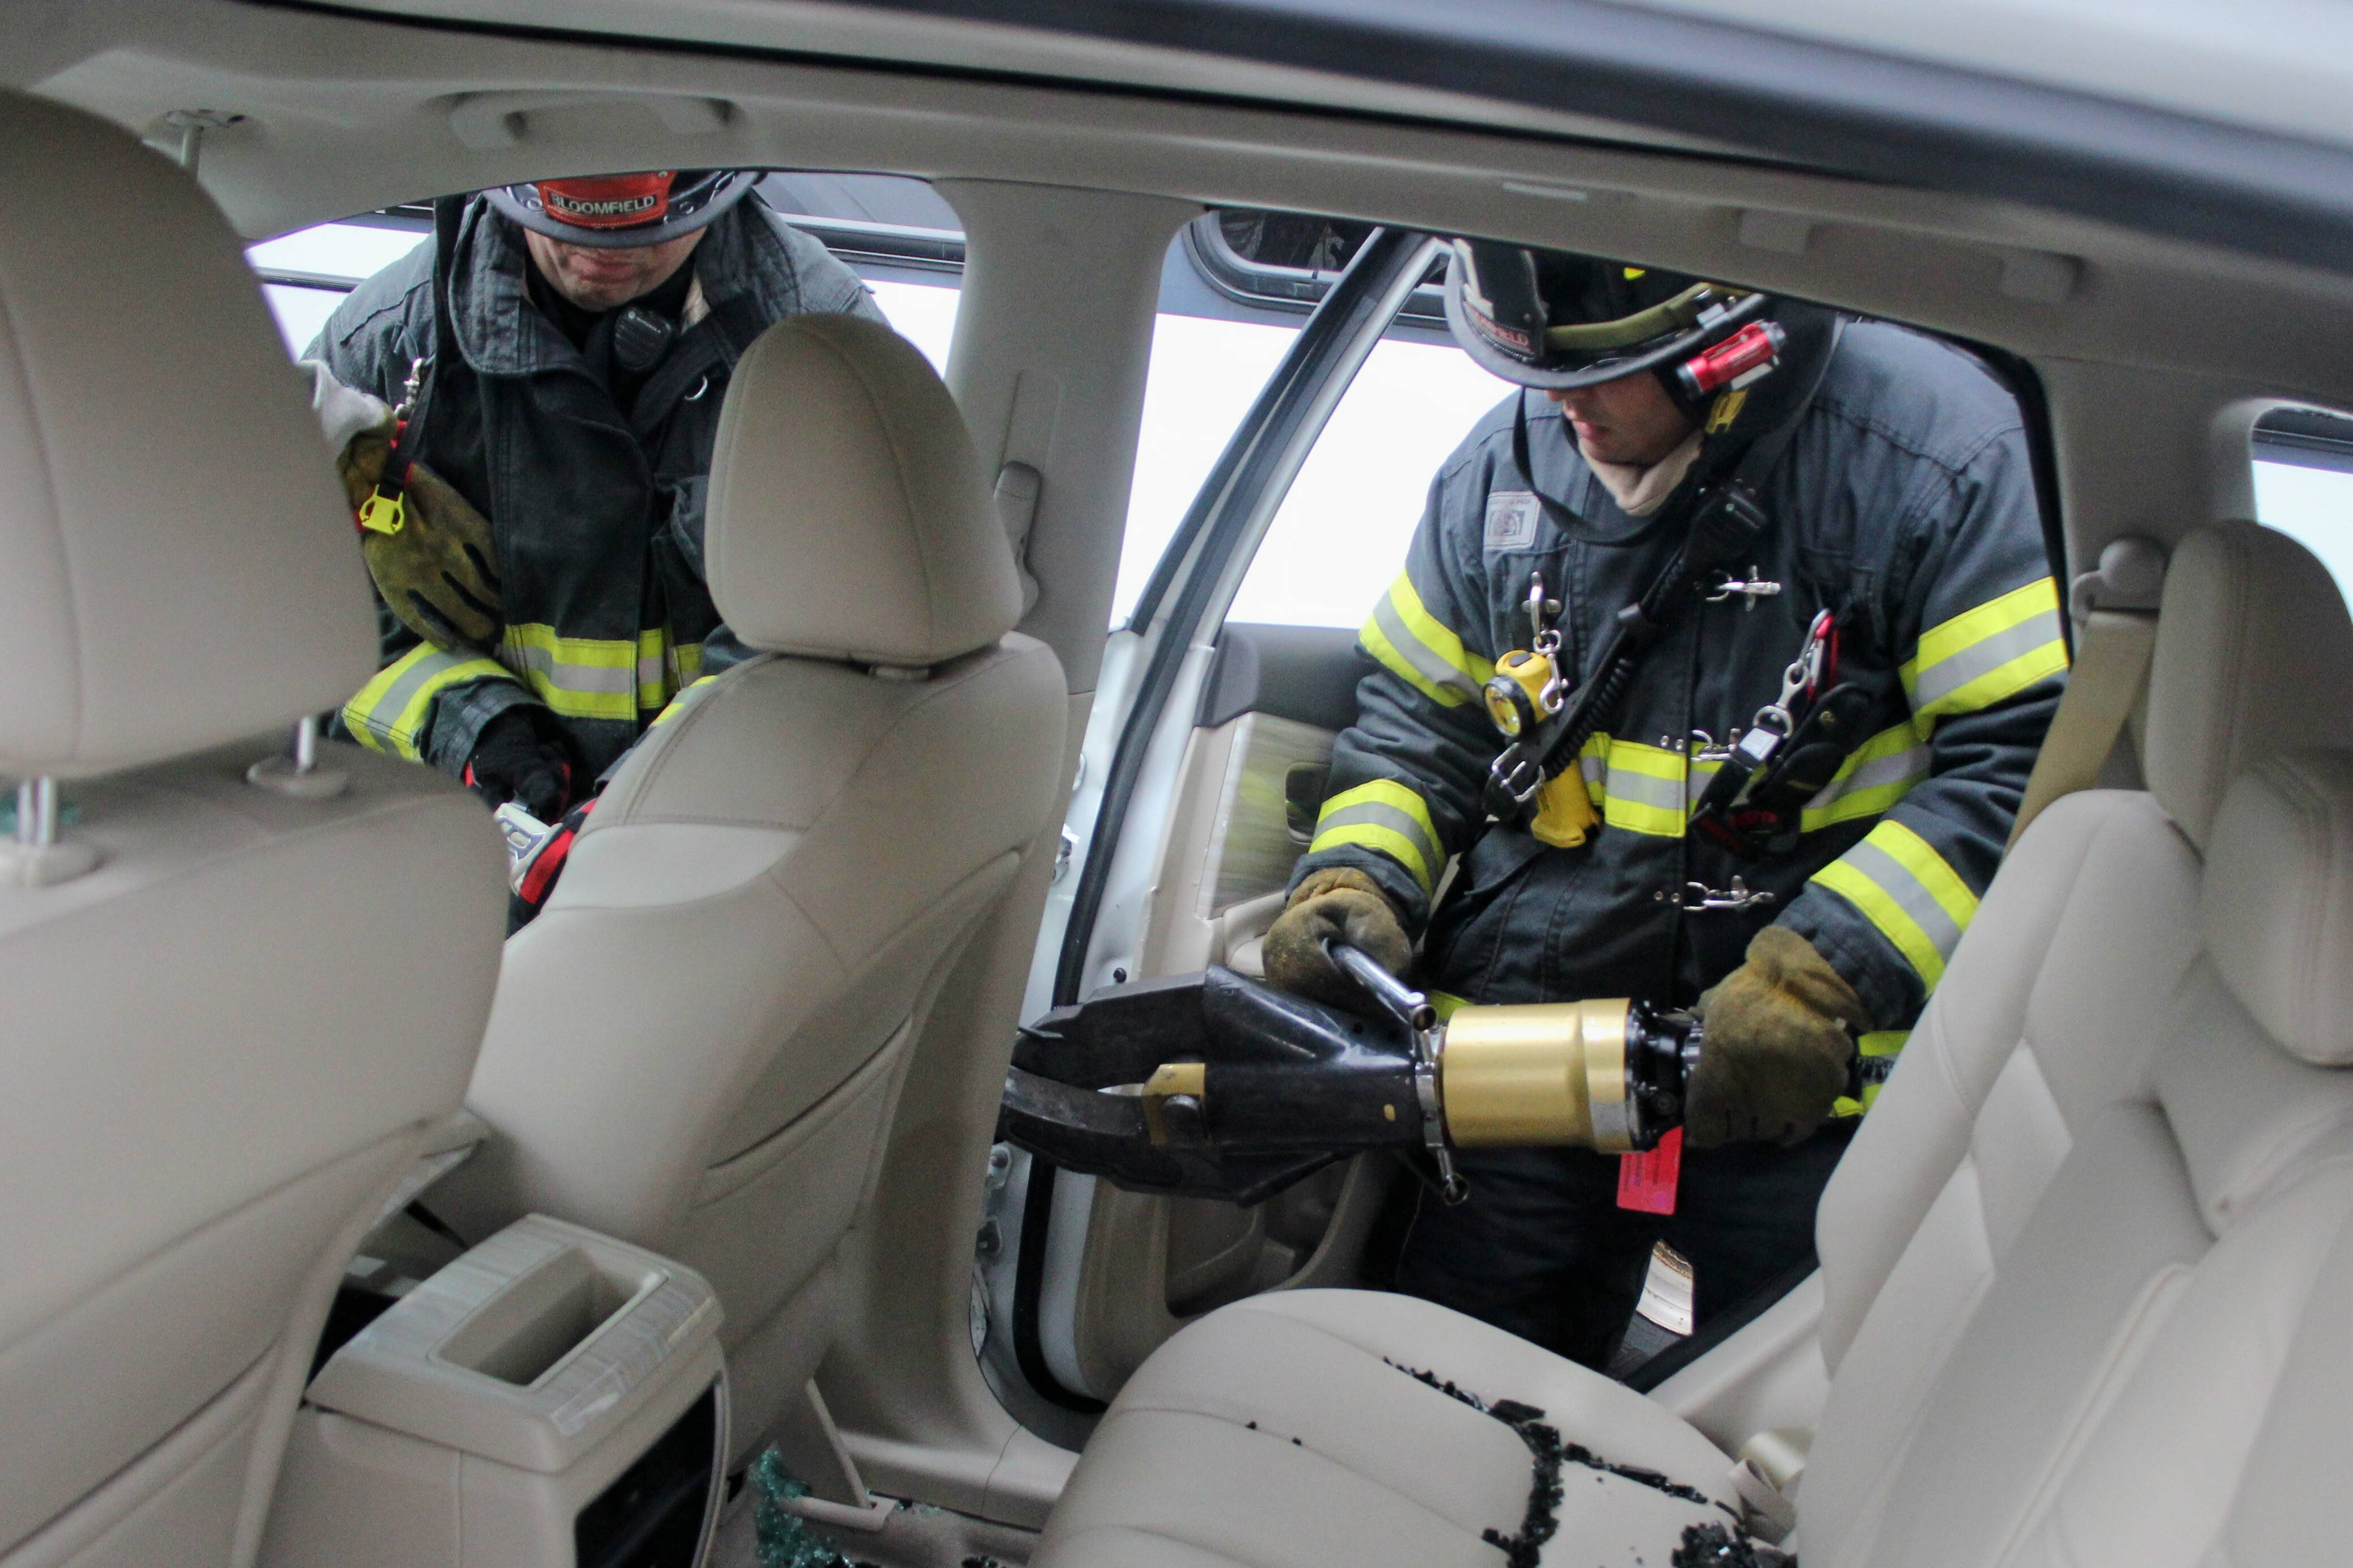 71a09fc0c3fd9ac51189_Nissan_Murano_Bloomfield_Fire_Department_Training_038.jpg